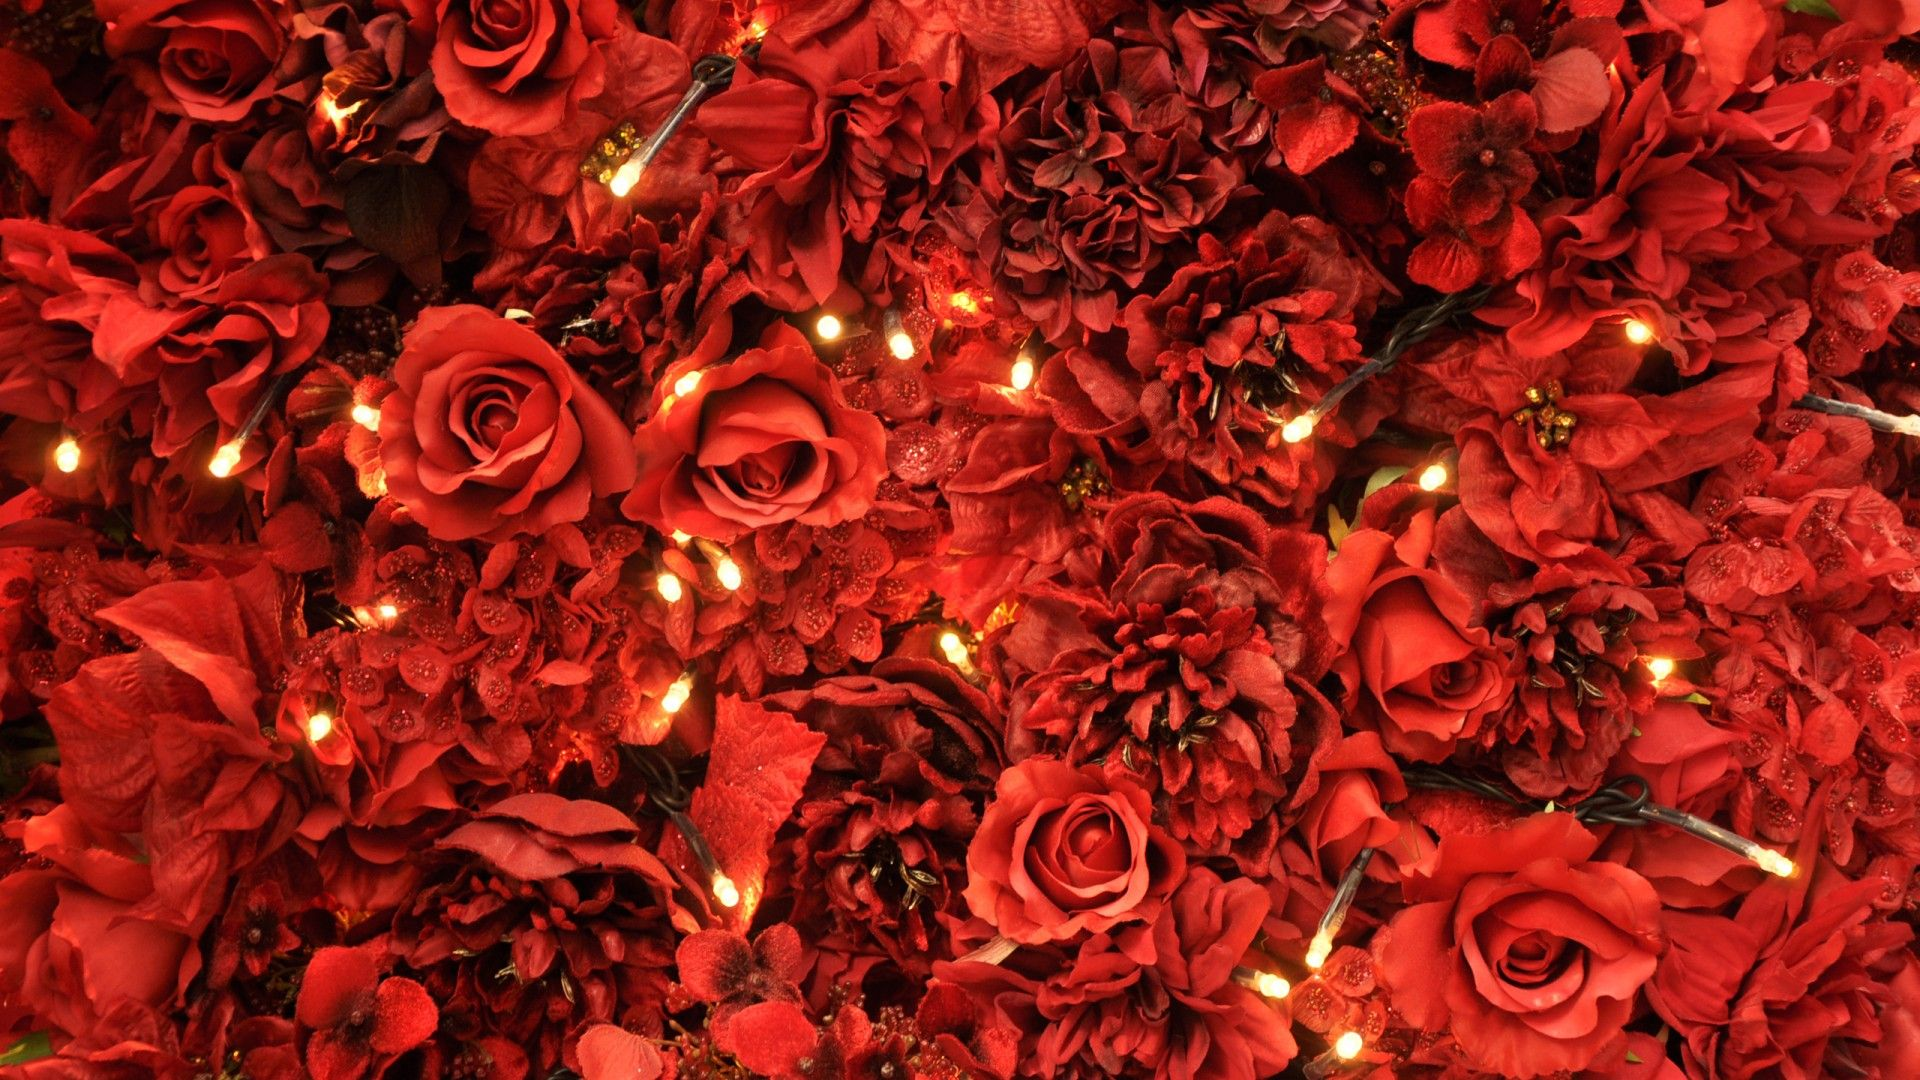 Hd Flower Wallpaper Red Roses Lights 2021 Live Wallpaper Hd Hd Flower Wallpaper Rose Wallpaper Red Rose Pictures